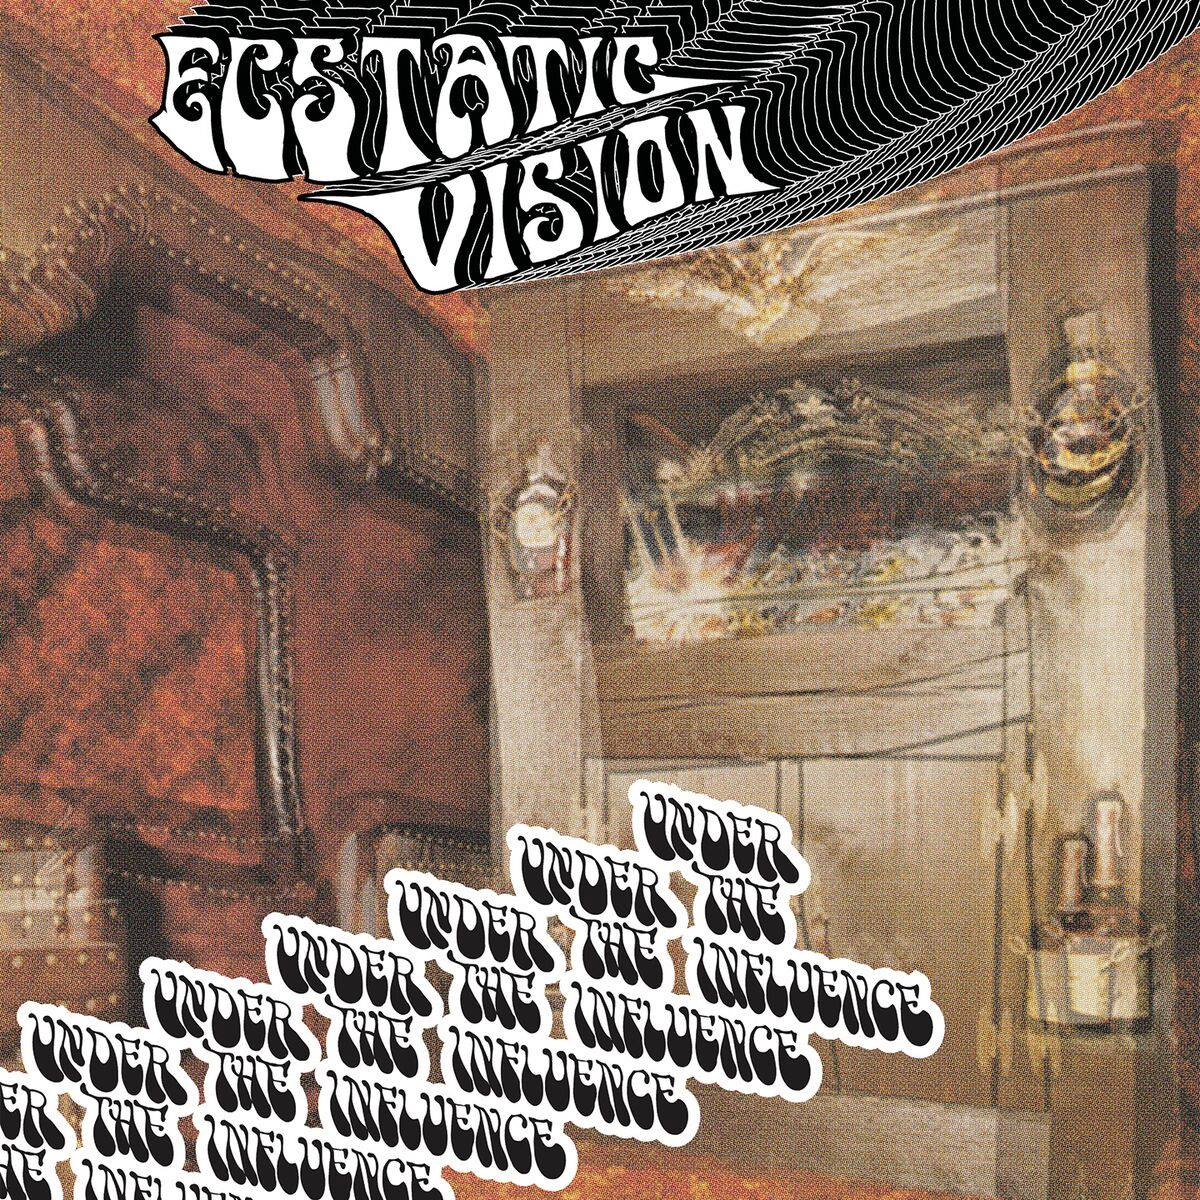 ecstatic vision under the influence